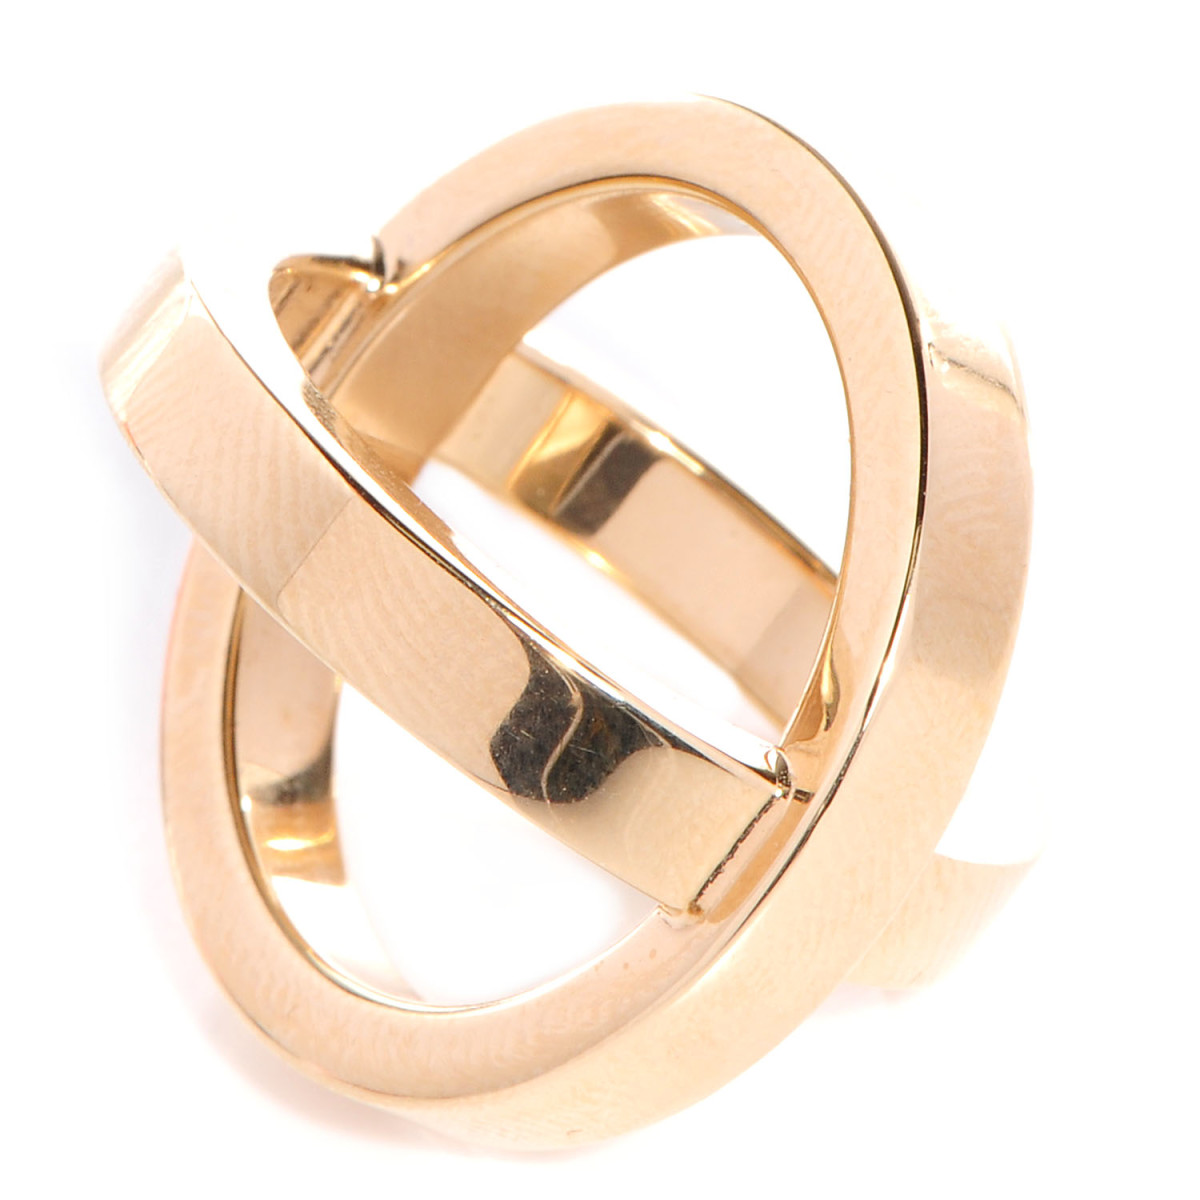 Hermes scarf ring in gold - modern design of circles